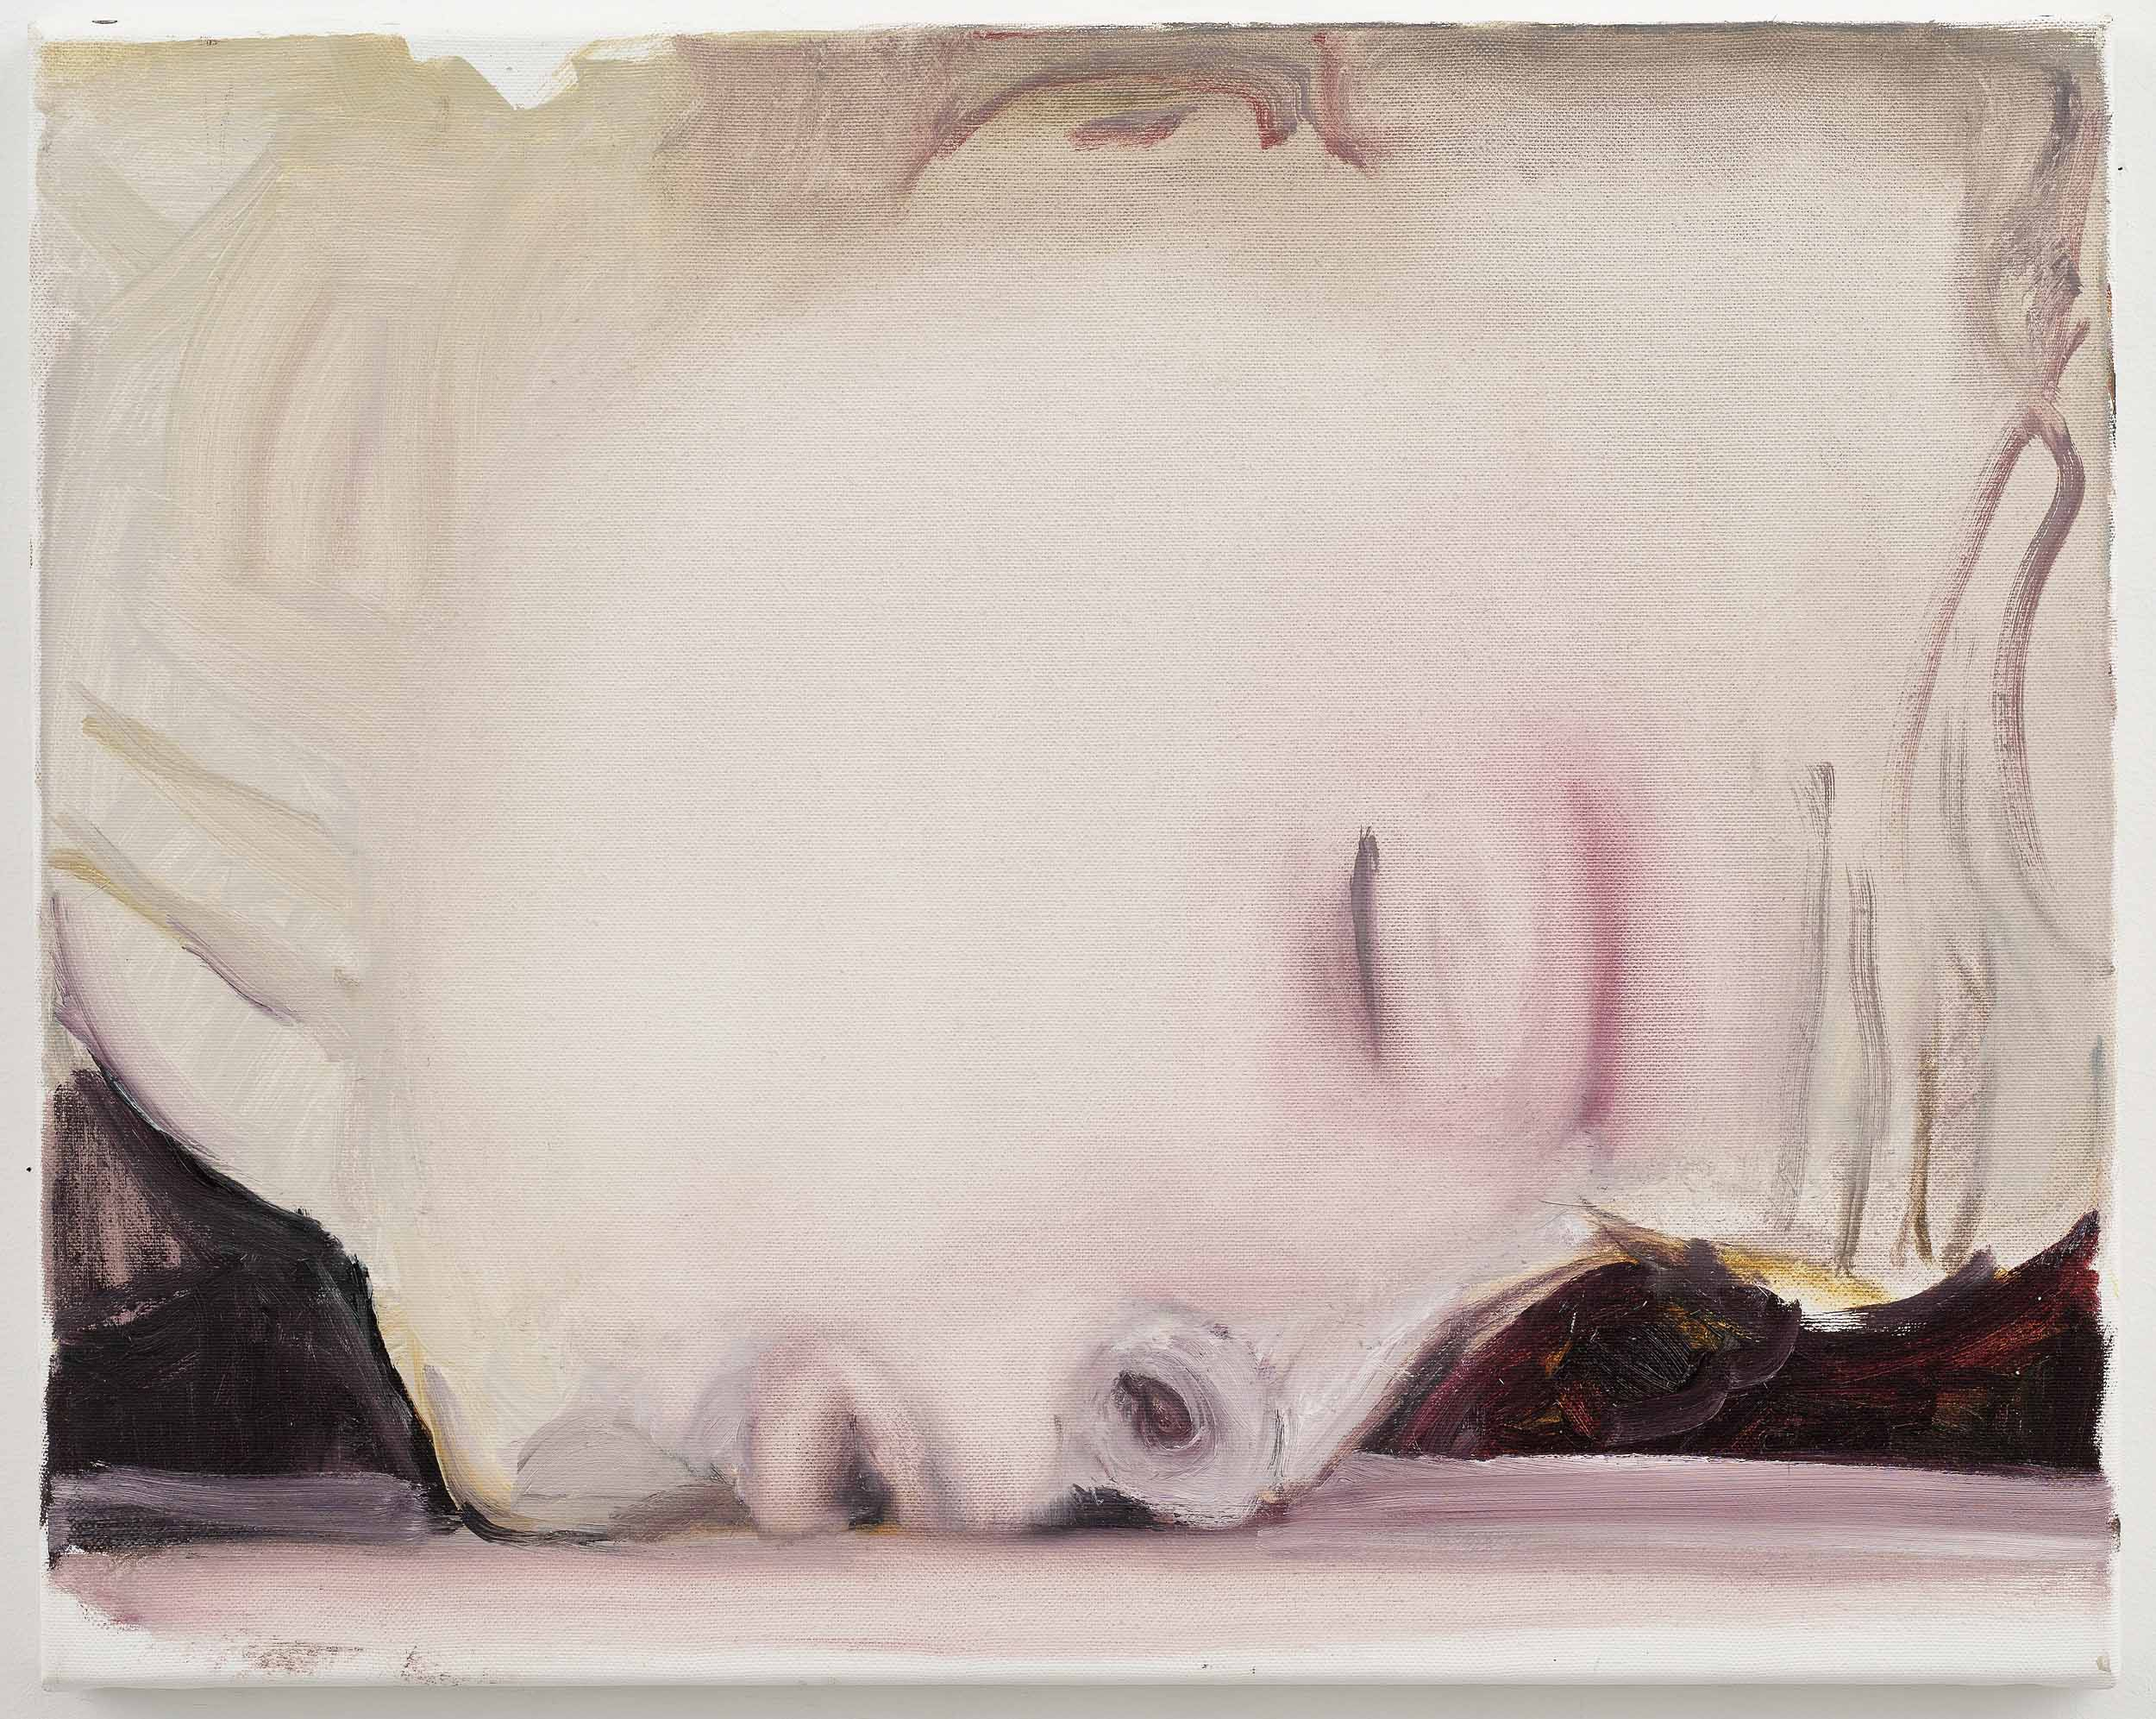 THE KISS  Marlene Dumas, The Kiss, 2003. Oil on Canvas. 40 x 50 cm. Private Collection © Marlene Dumas. Photo © Peter Cox